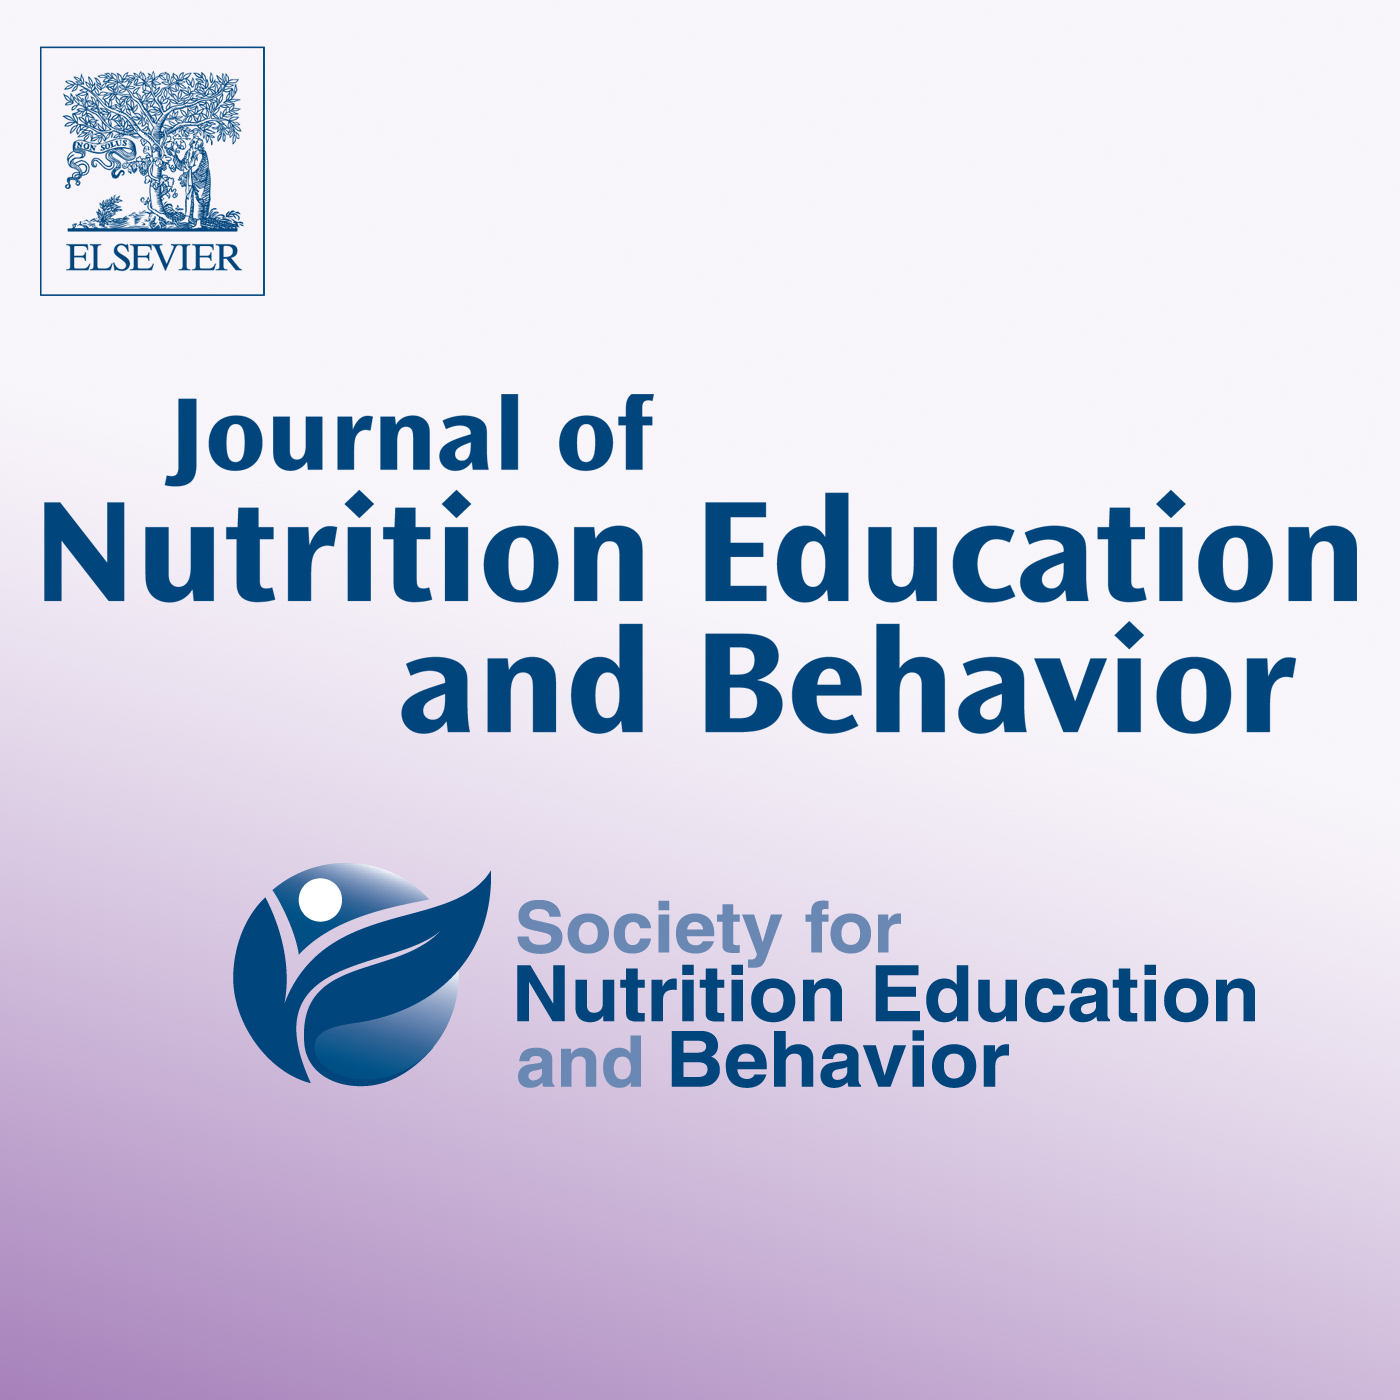 Journal of Nutrition Education and Behavior